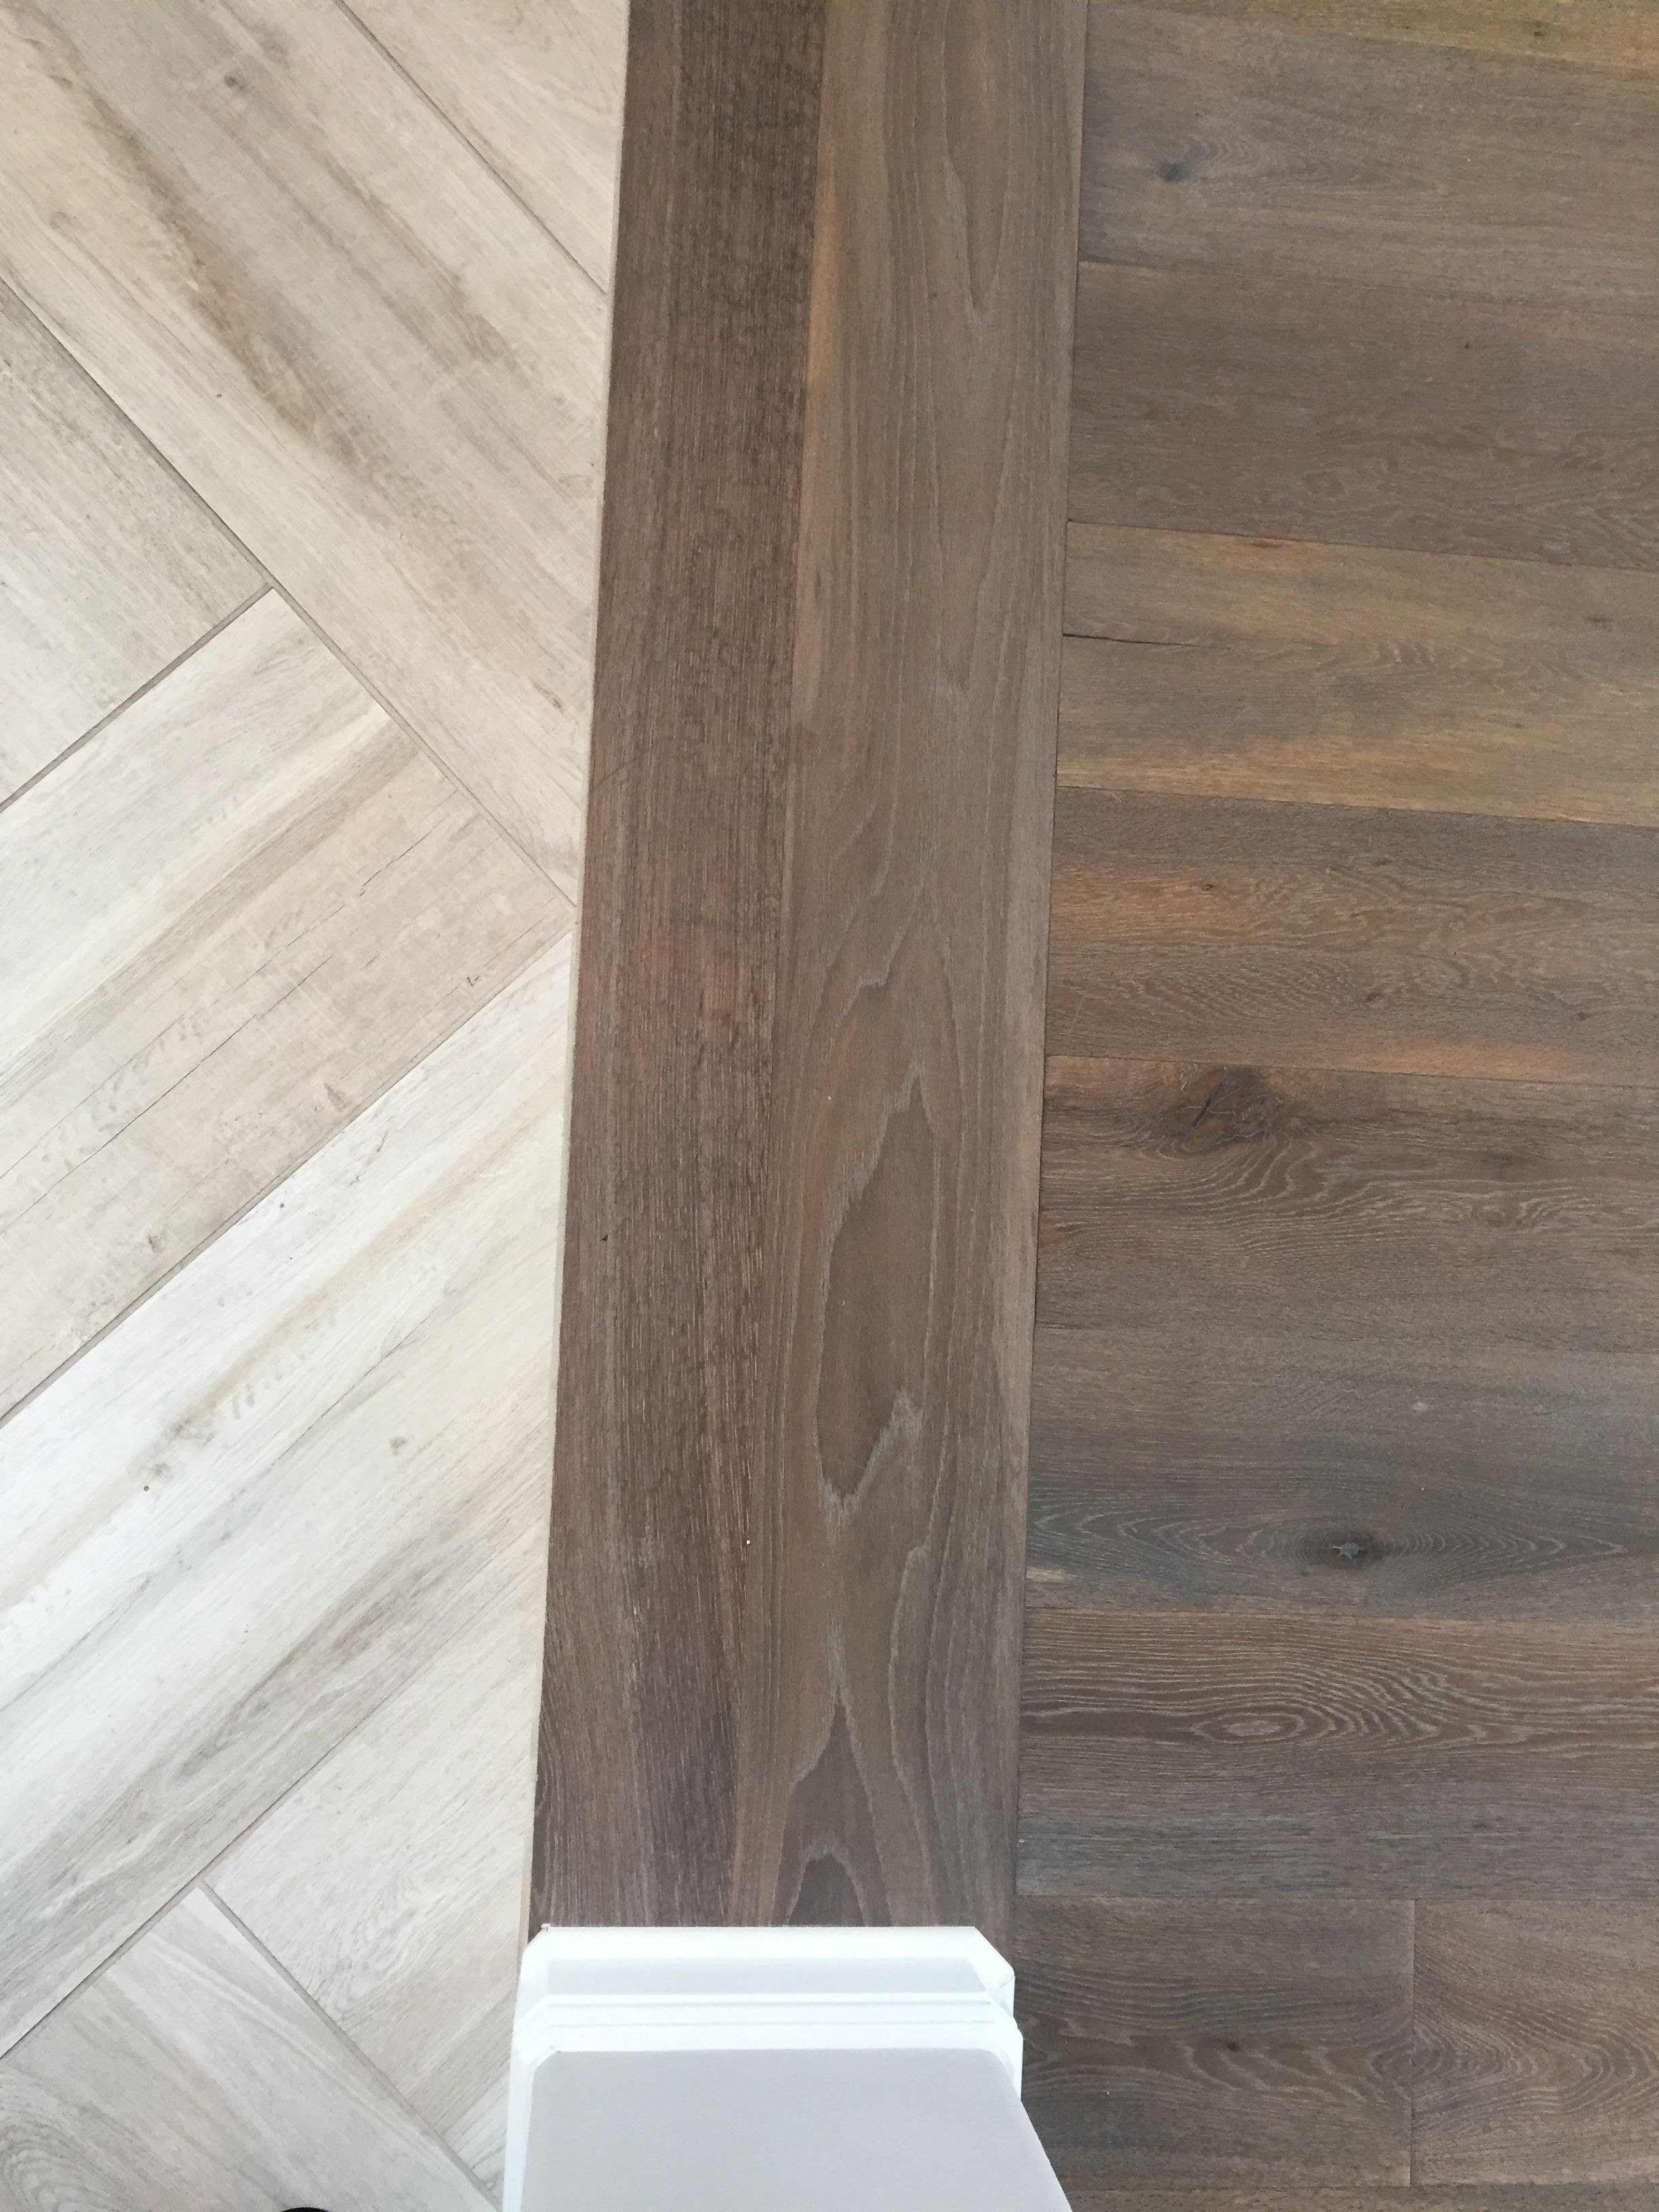 bruce hardwood floor stain colors of floor transition laminate to herringbone tile pattern model inside floor transition laminate to herringbone tile pattern herringbone tile pattern herringbone wood floor